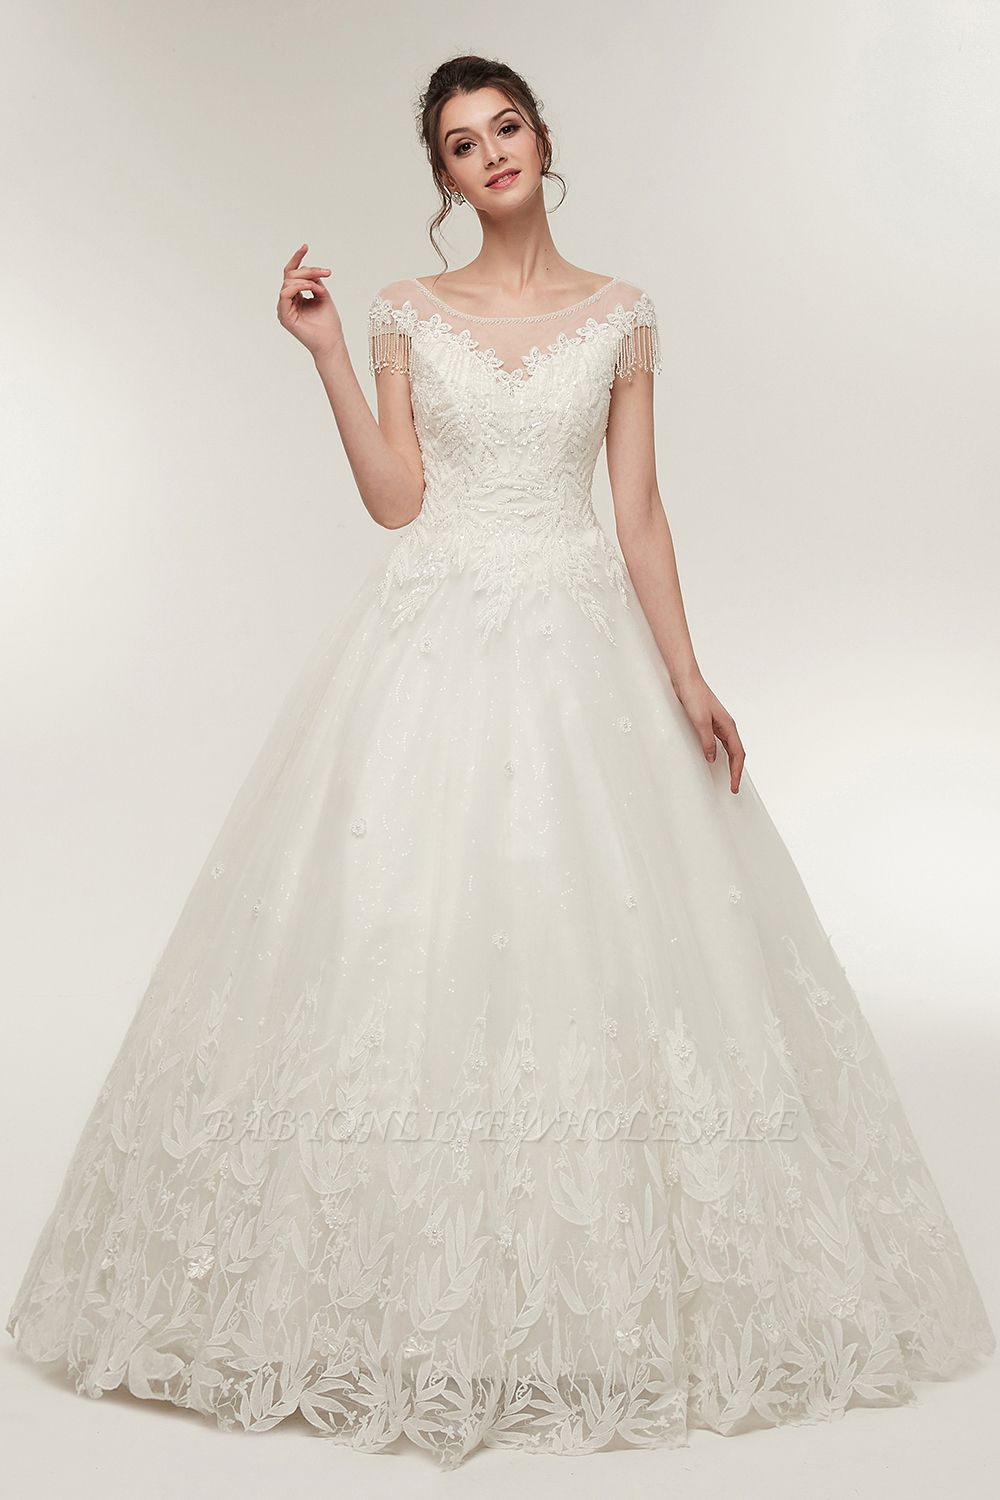 YVETTE | A-line Cap Sleeves Scoop Floor Length Lace Appliques Wedding Dresses with Crystals